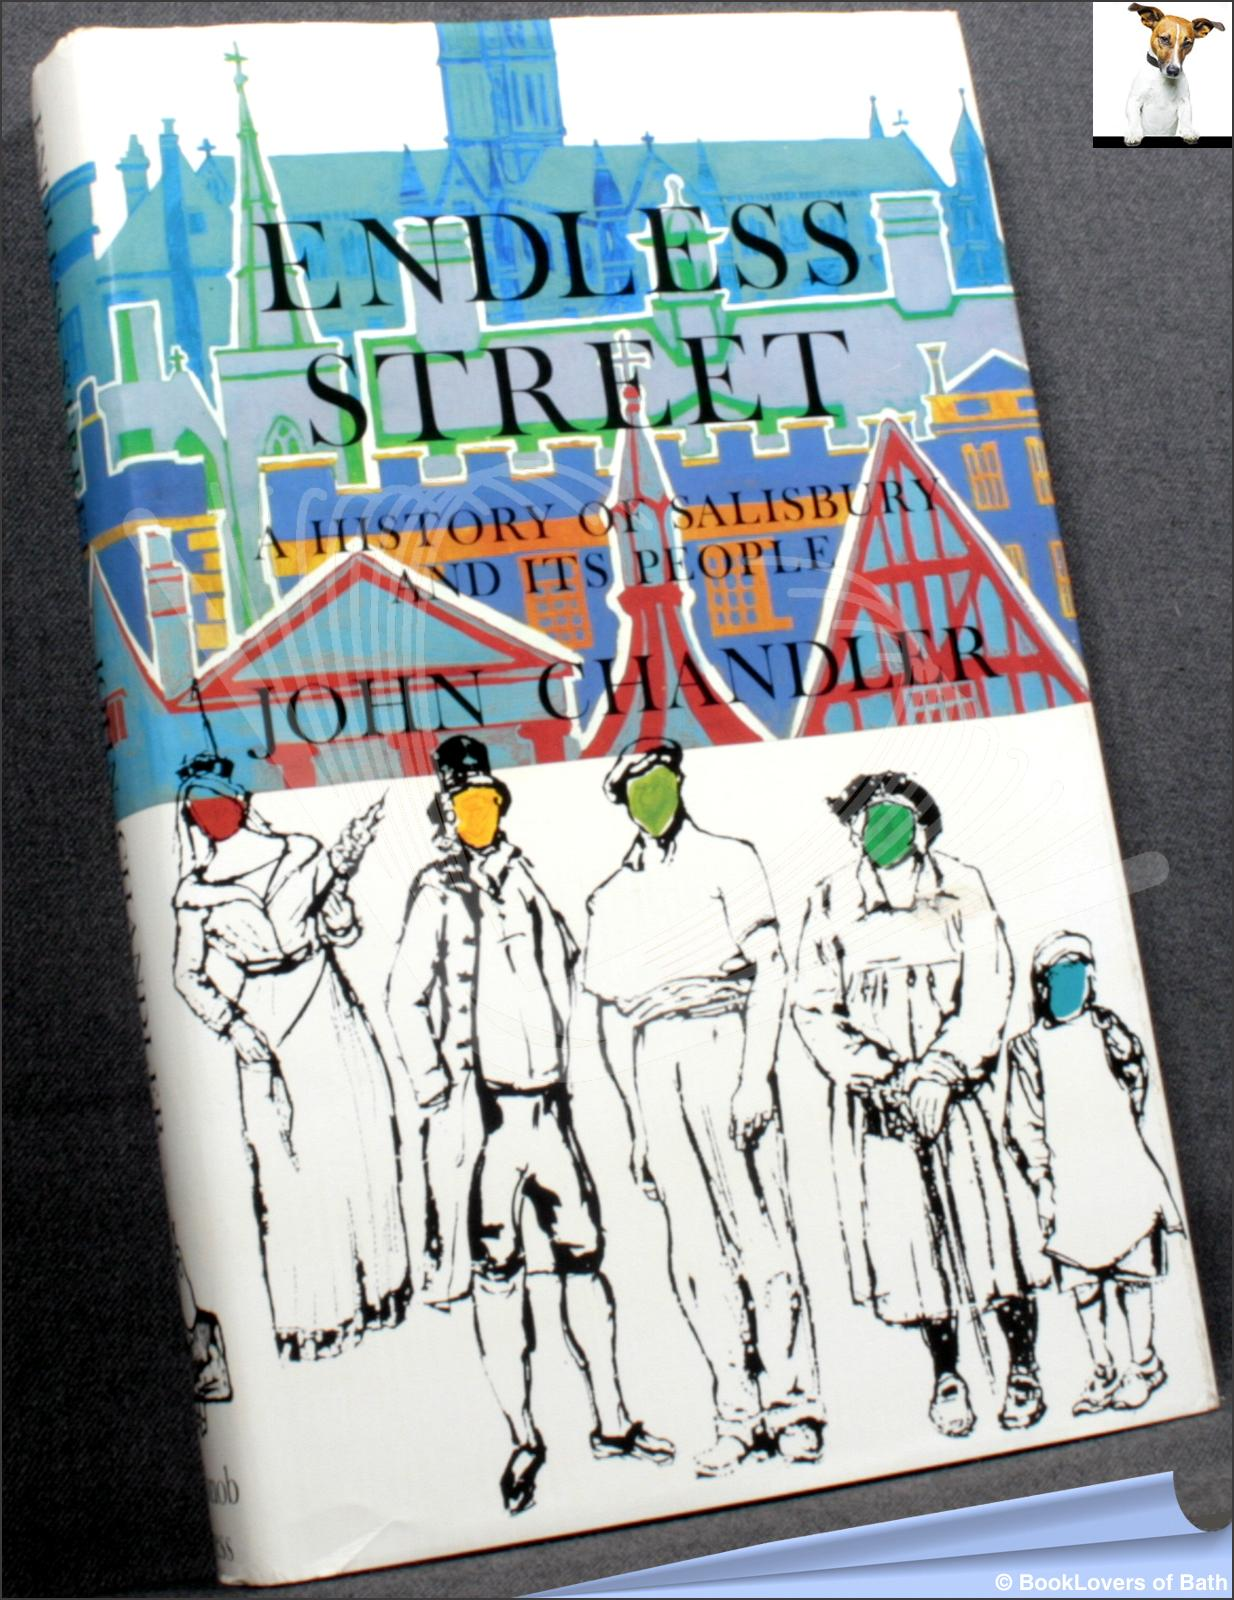 Endless Street: A History of Salisbury and Its People - John Chandler